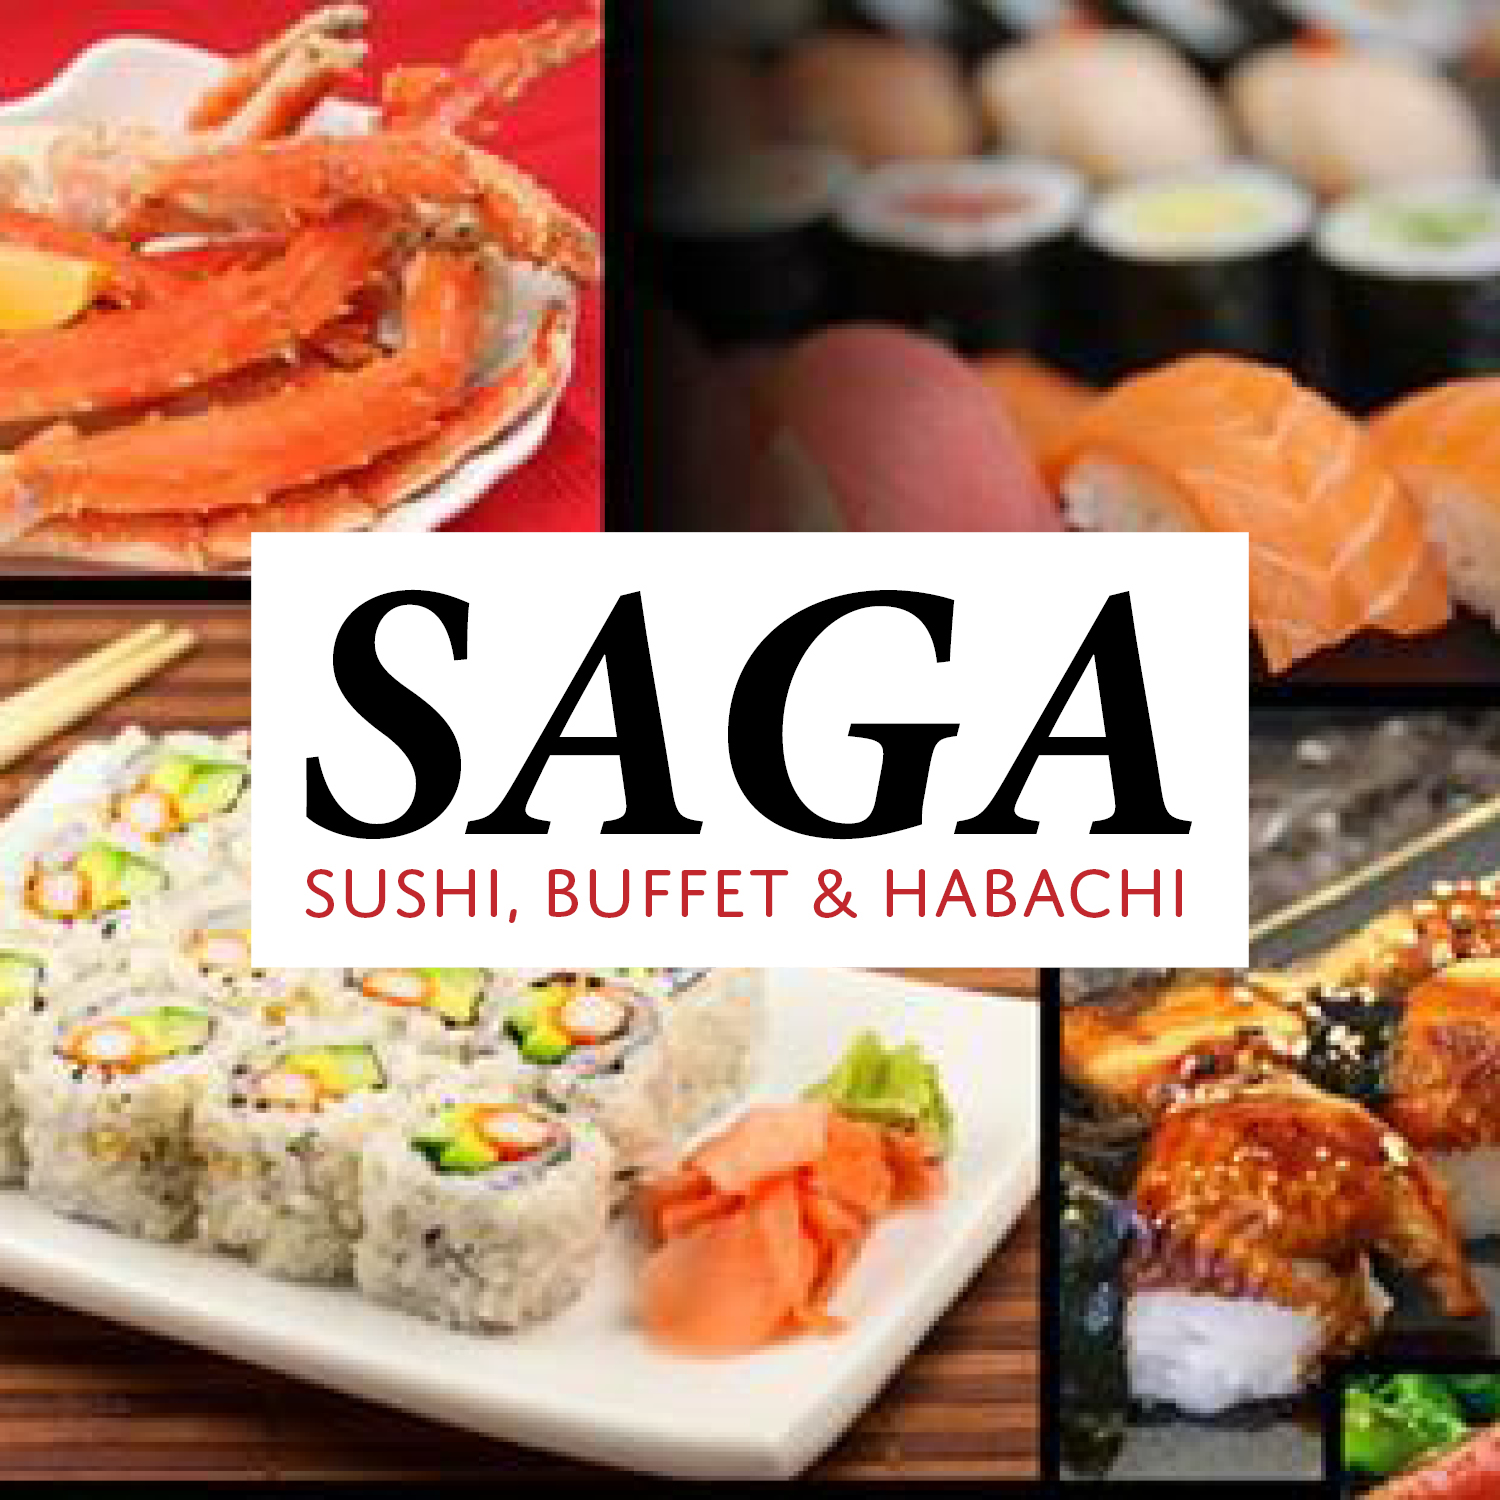 Welcome to Saga Sushi Buffet & Hibachi! We have a great buffet with many different Asian cuisine, including authentic Chinese, Sushi Bar, Hibachi Grill, ice cream and much much more! Also visit our website for more information to take a look at our menu!     -Click image to view current offers-